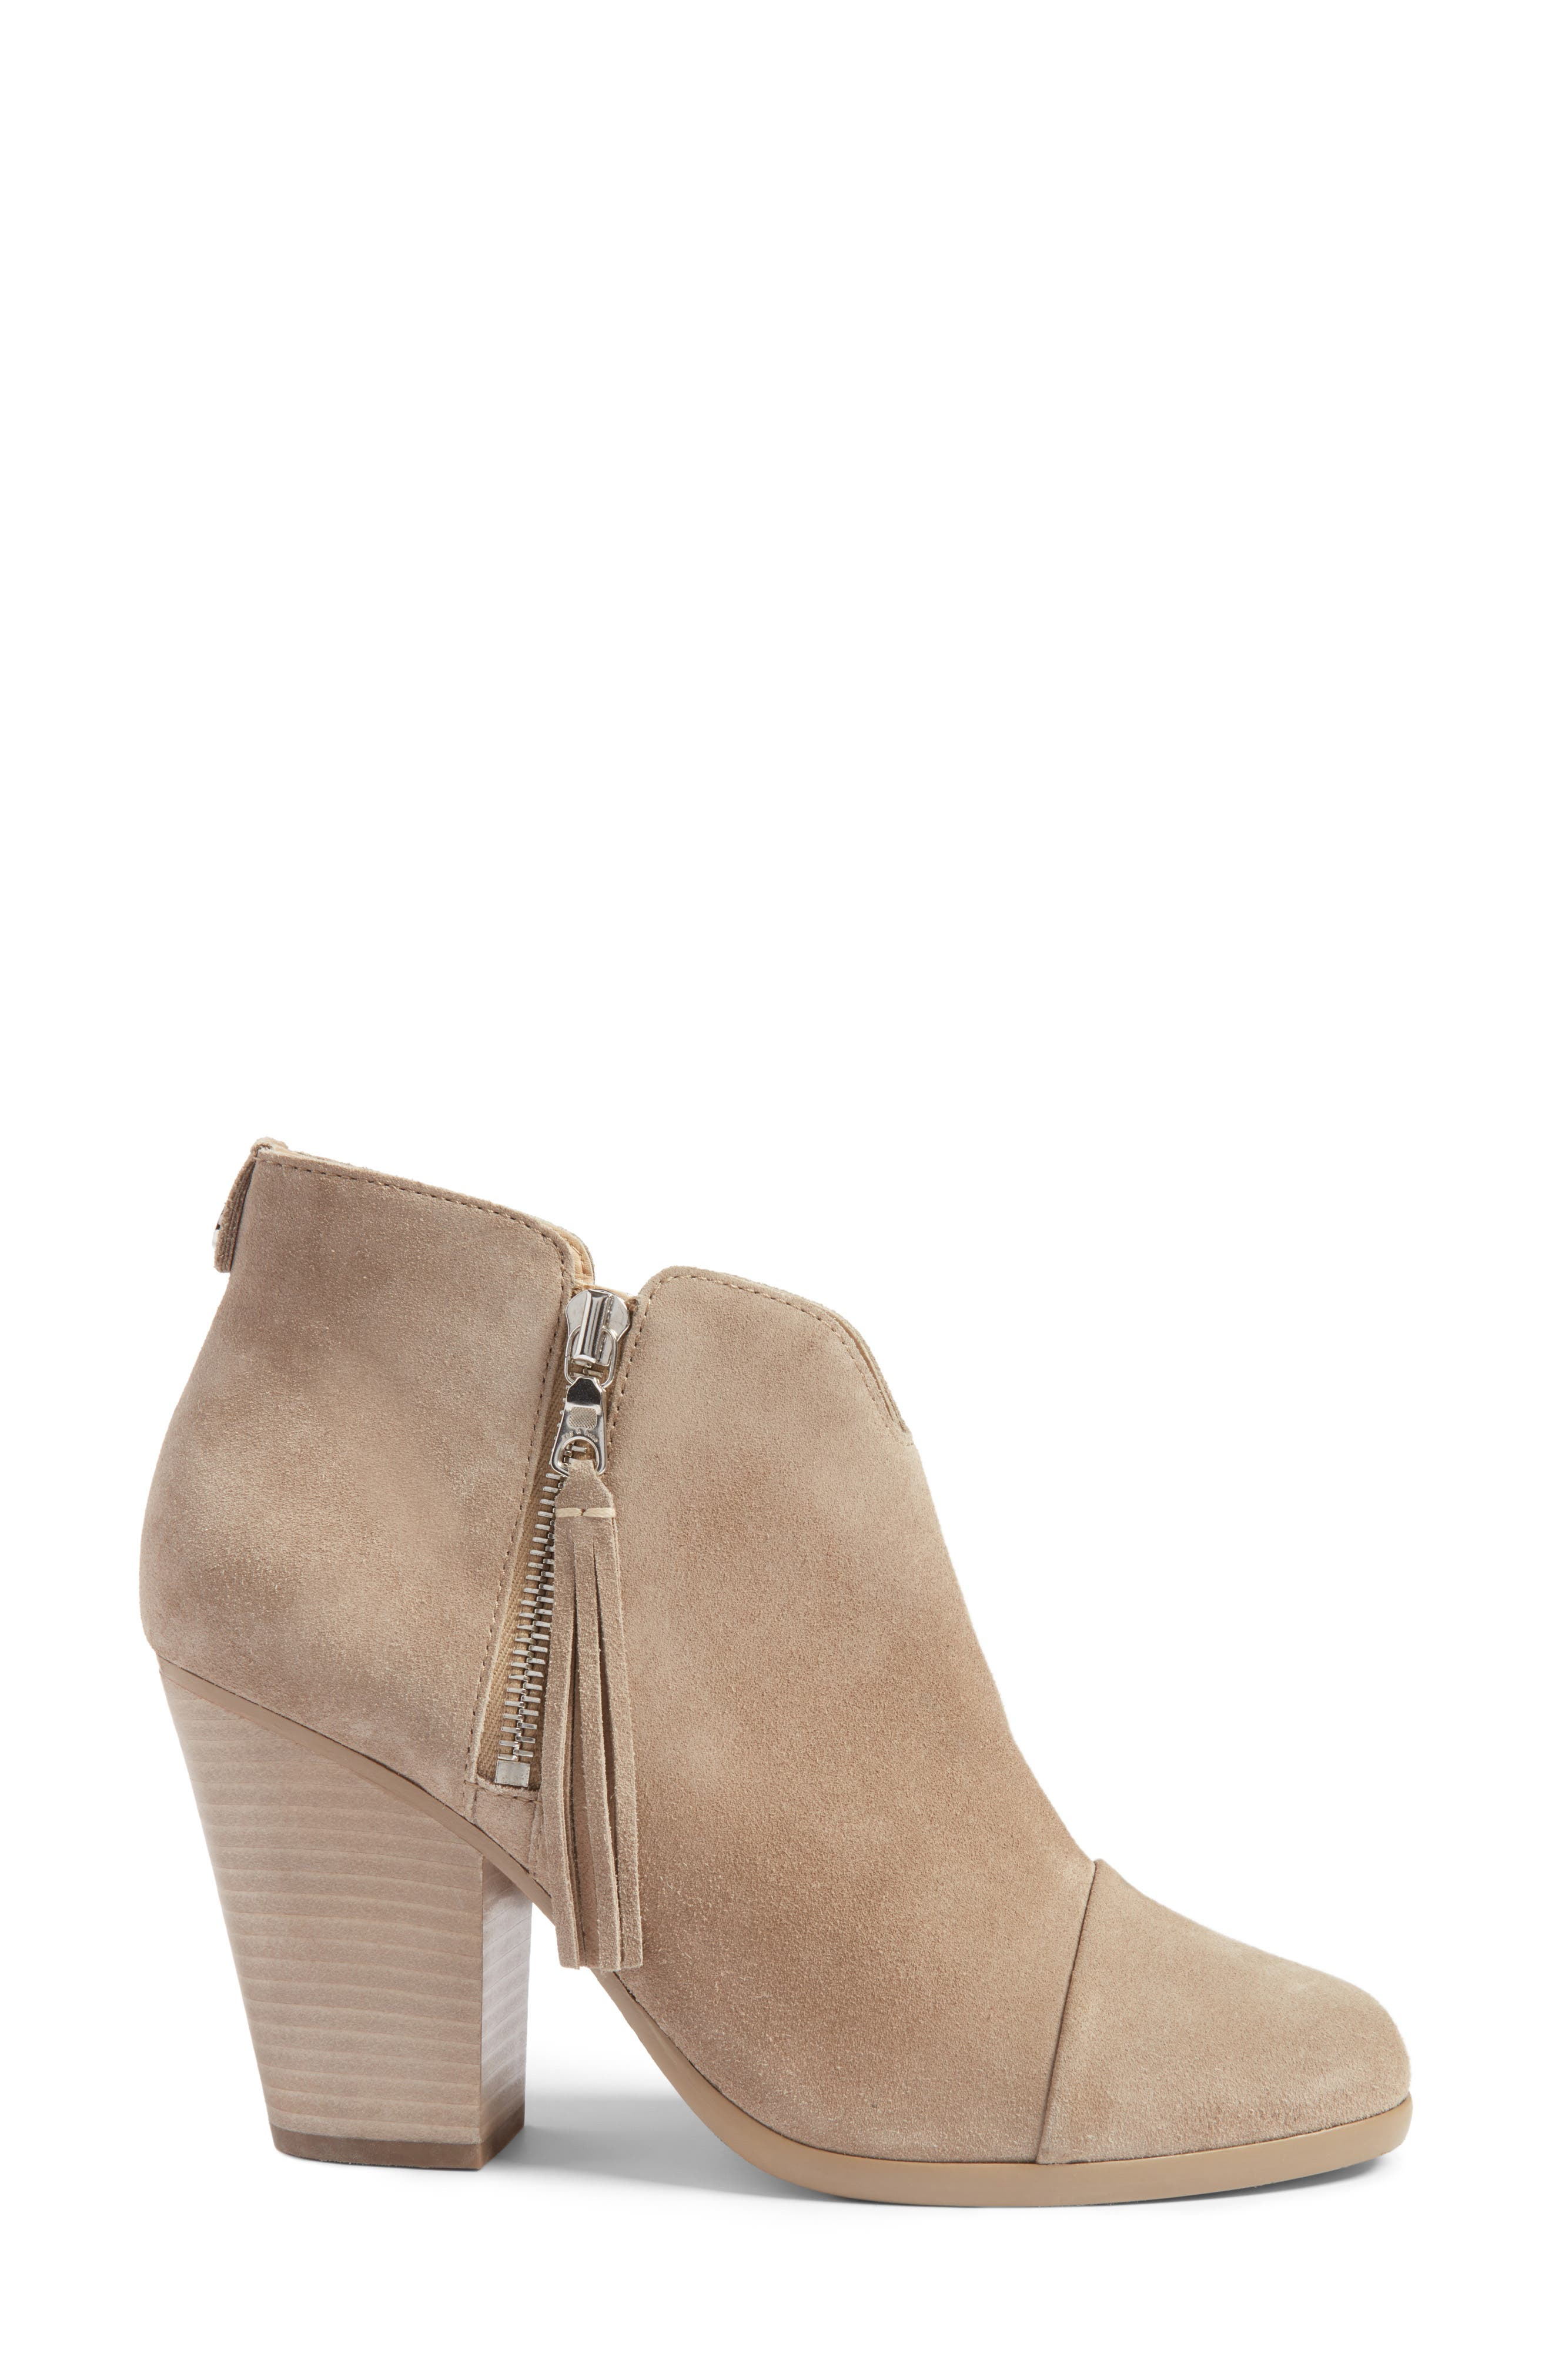 Alternate Image 3  - rag & bone Margot Fringe Cap Toe Bootie (Women)